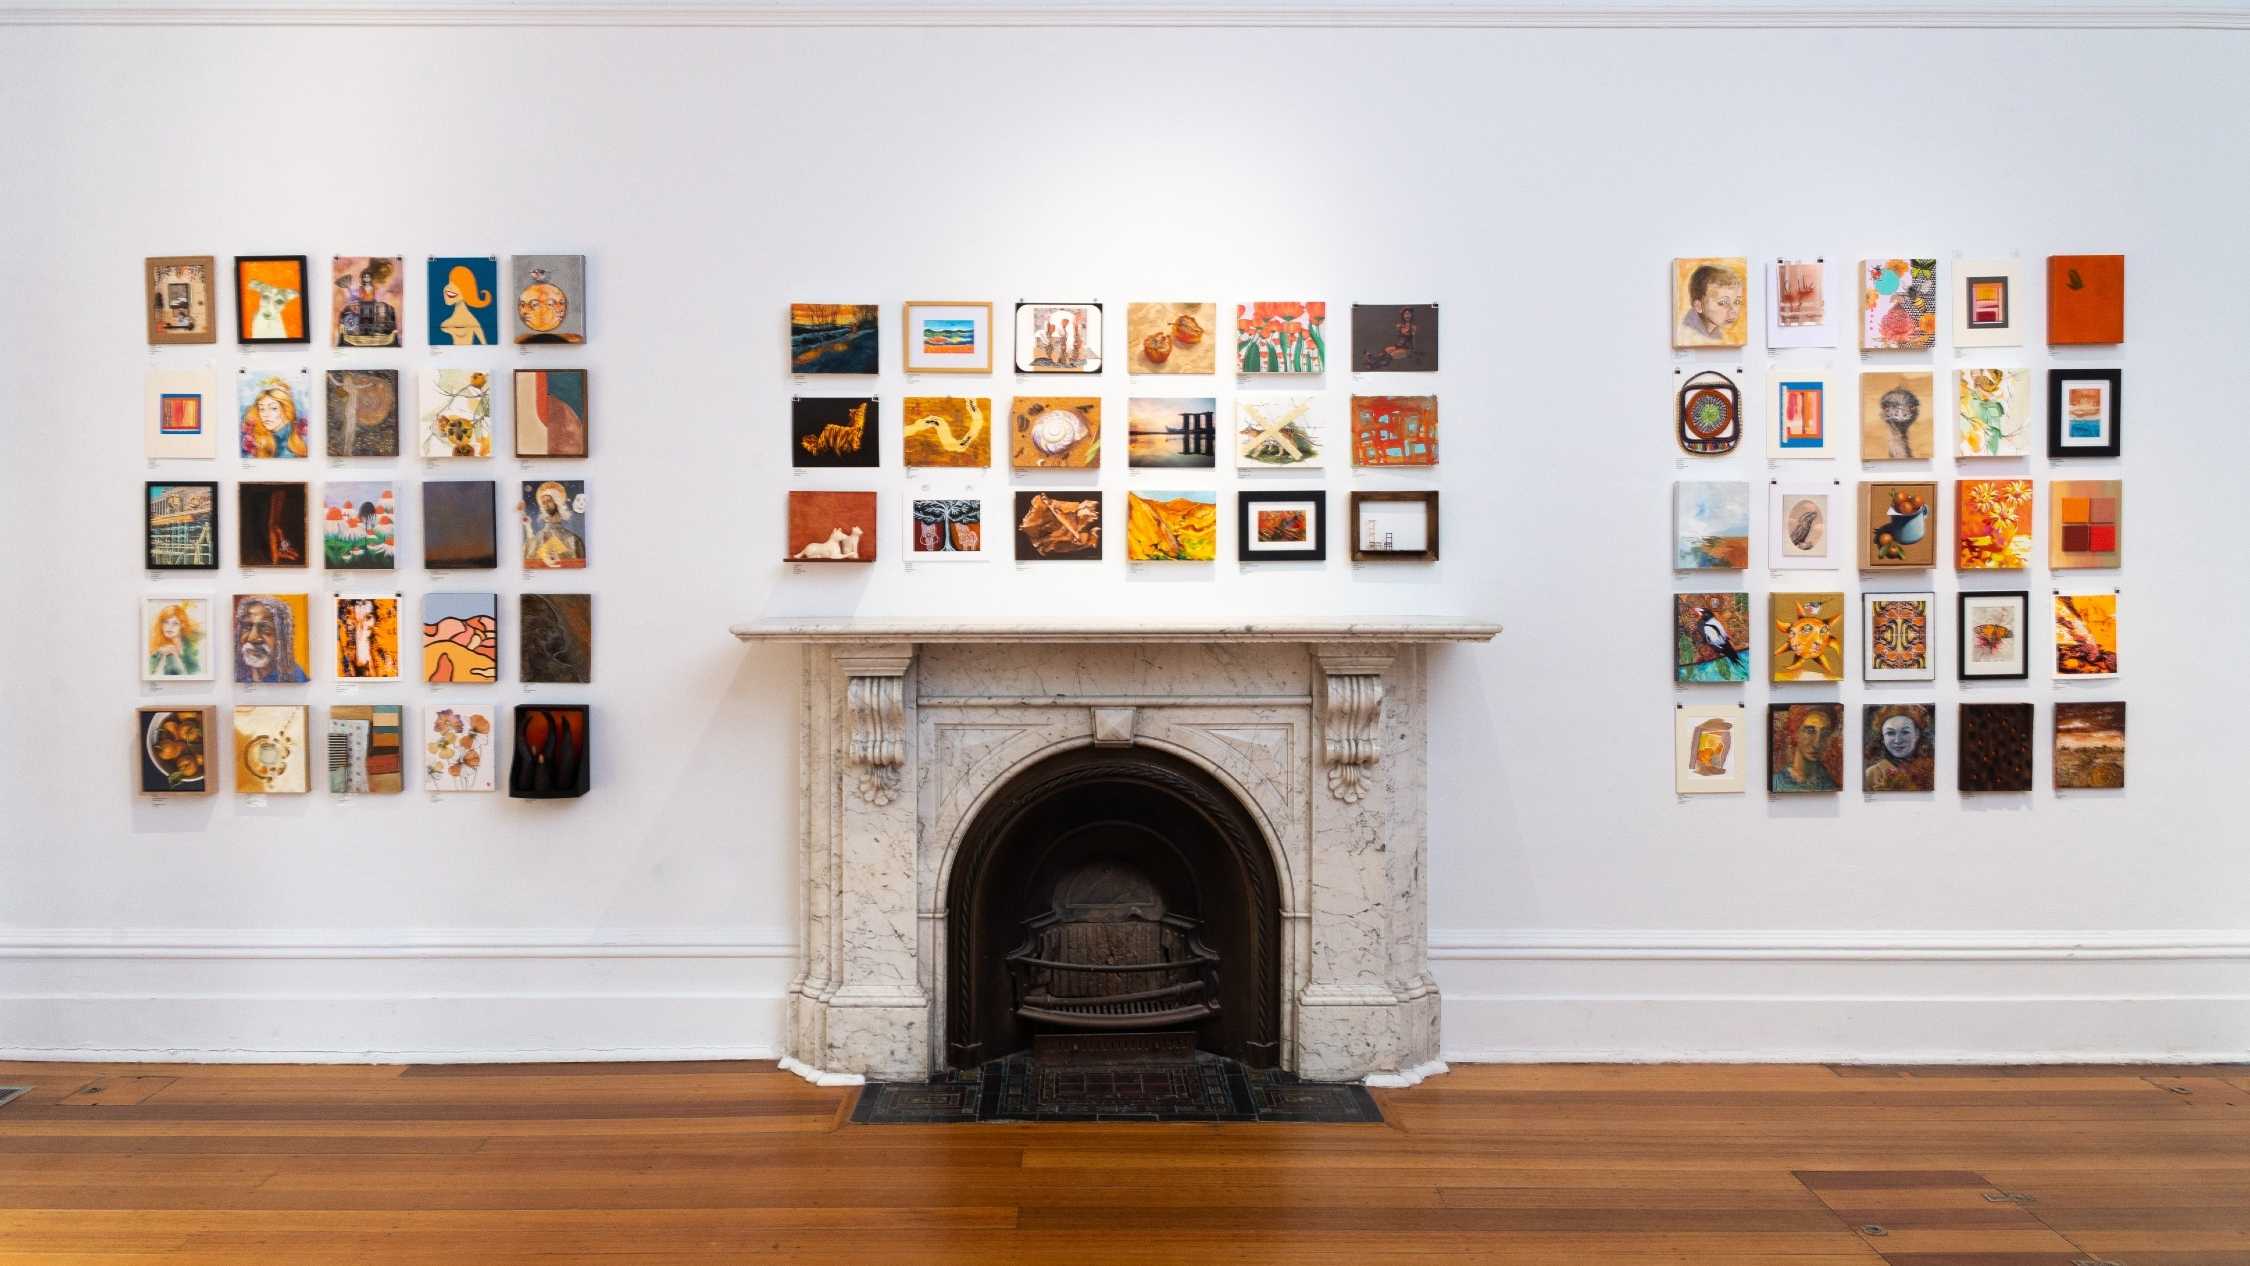 Dozens of small artworks hung on a white wall over a timber floor and white marble fireplace